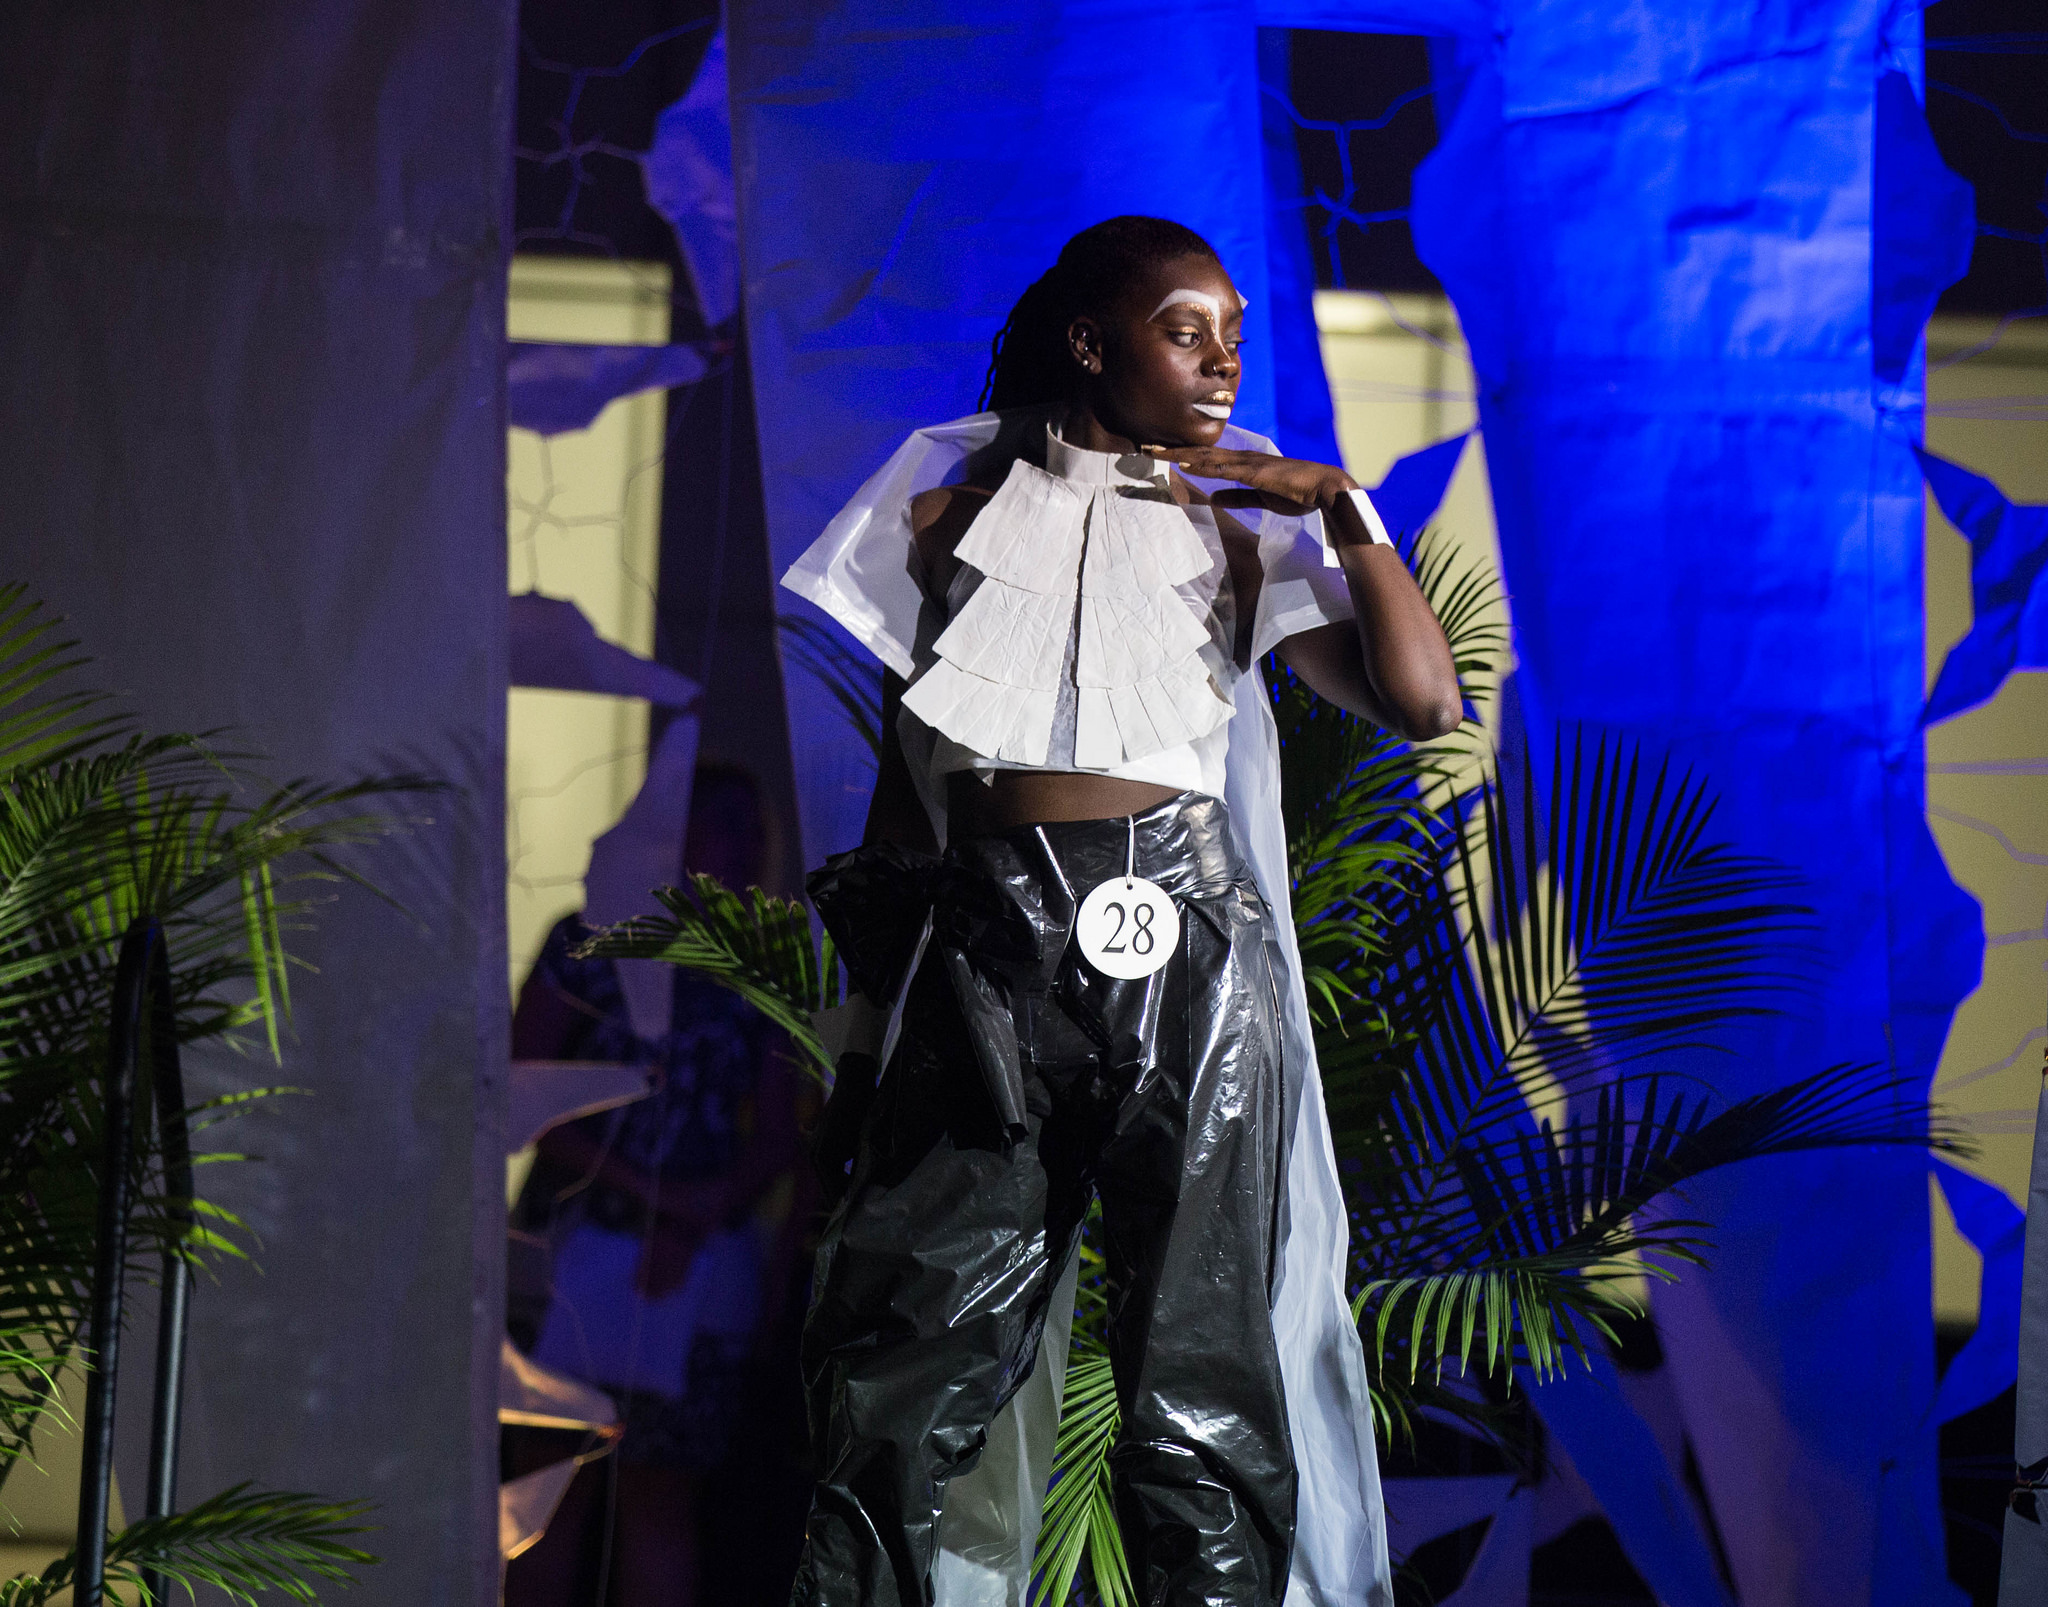 Architecture graduate student Danyealah Green-Lemons models the winning outfit design at the third annual Eco Couture Fashion Show March 31.